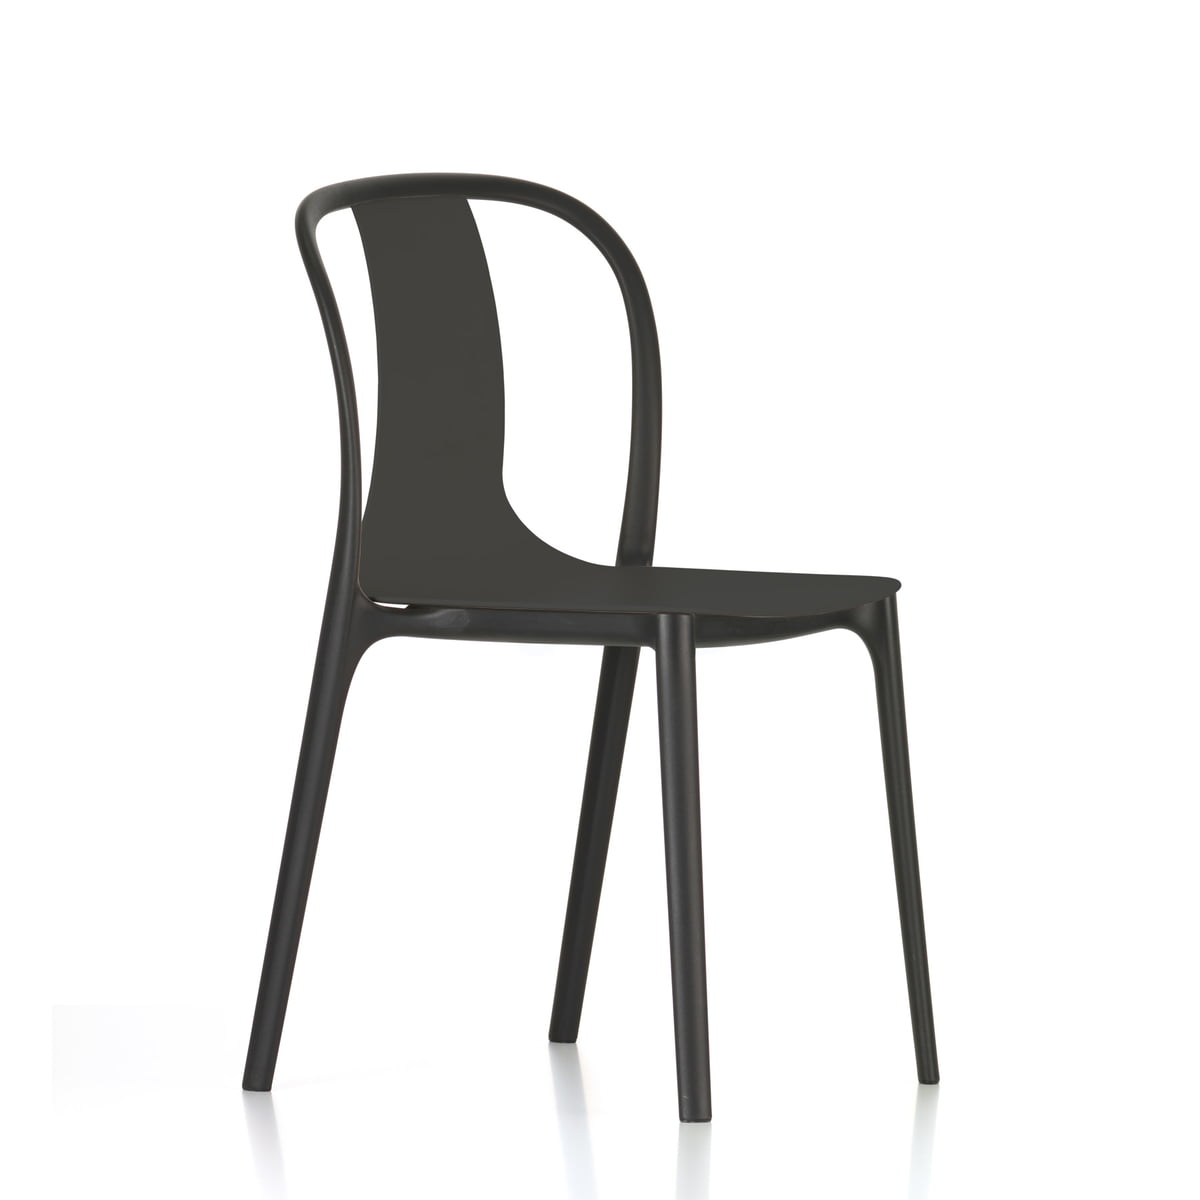 belleville chair plastic by vitra in the shop. Black Bedroom Furniture Sets. Home Design Ideas